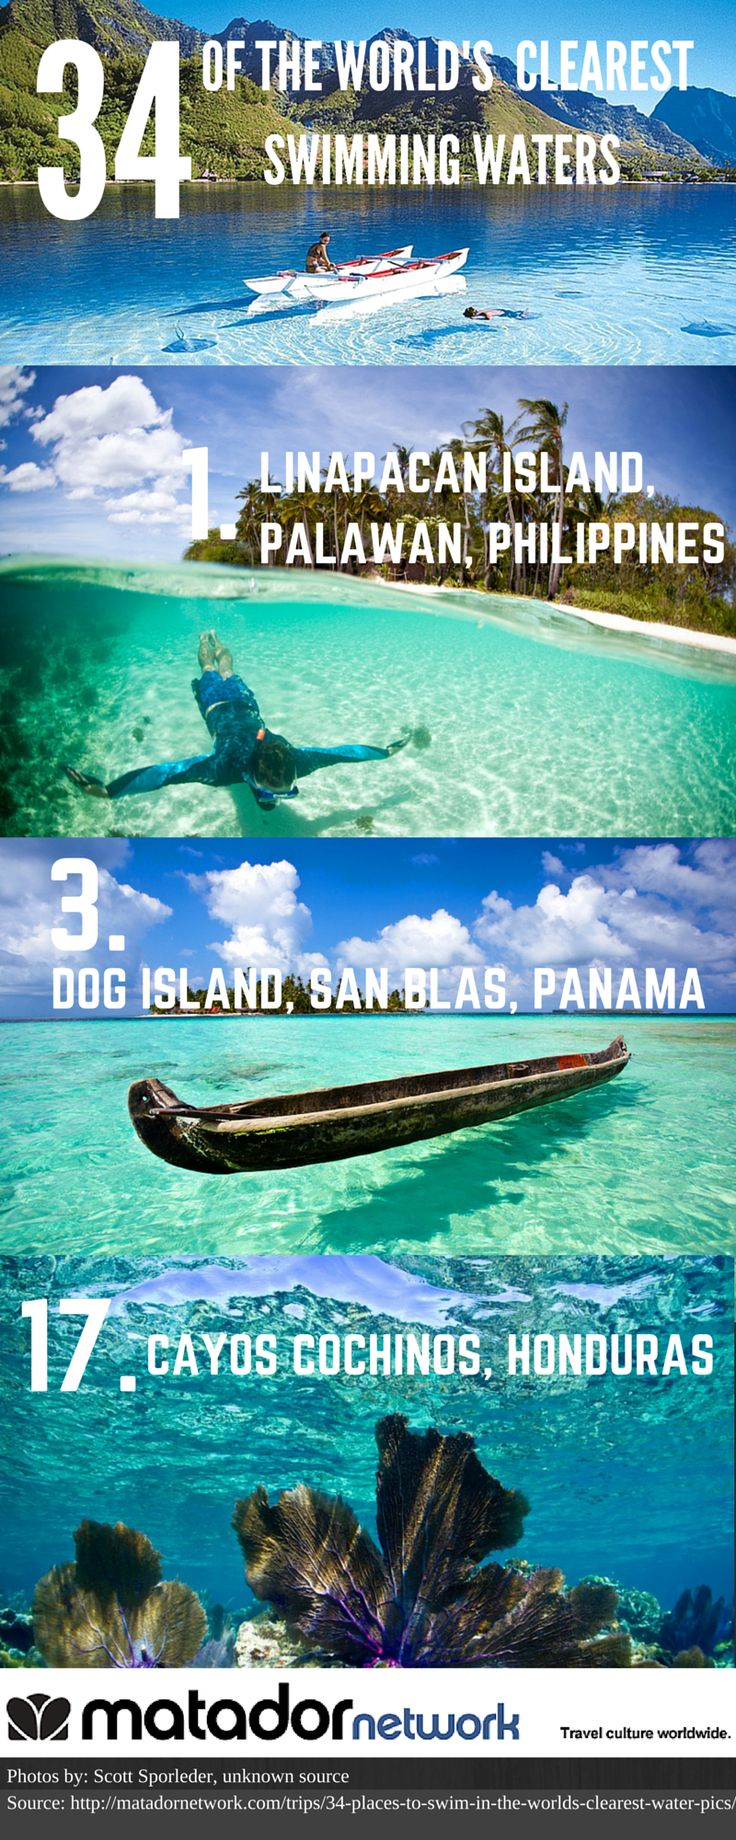 34 of the World's Clearest Swimming Waters that include Honduras, Phillipines and Panama. Those are just 3 of 34. Spot number 6 is truly amazing! http://matadornetwork.com/trips/34-places-to-swim-in-the-worlds-clearest-water-pics/